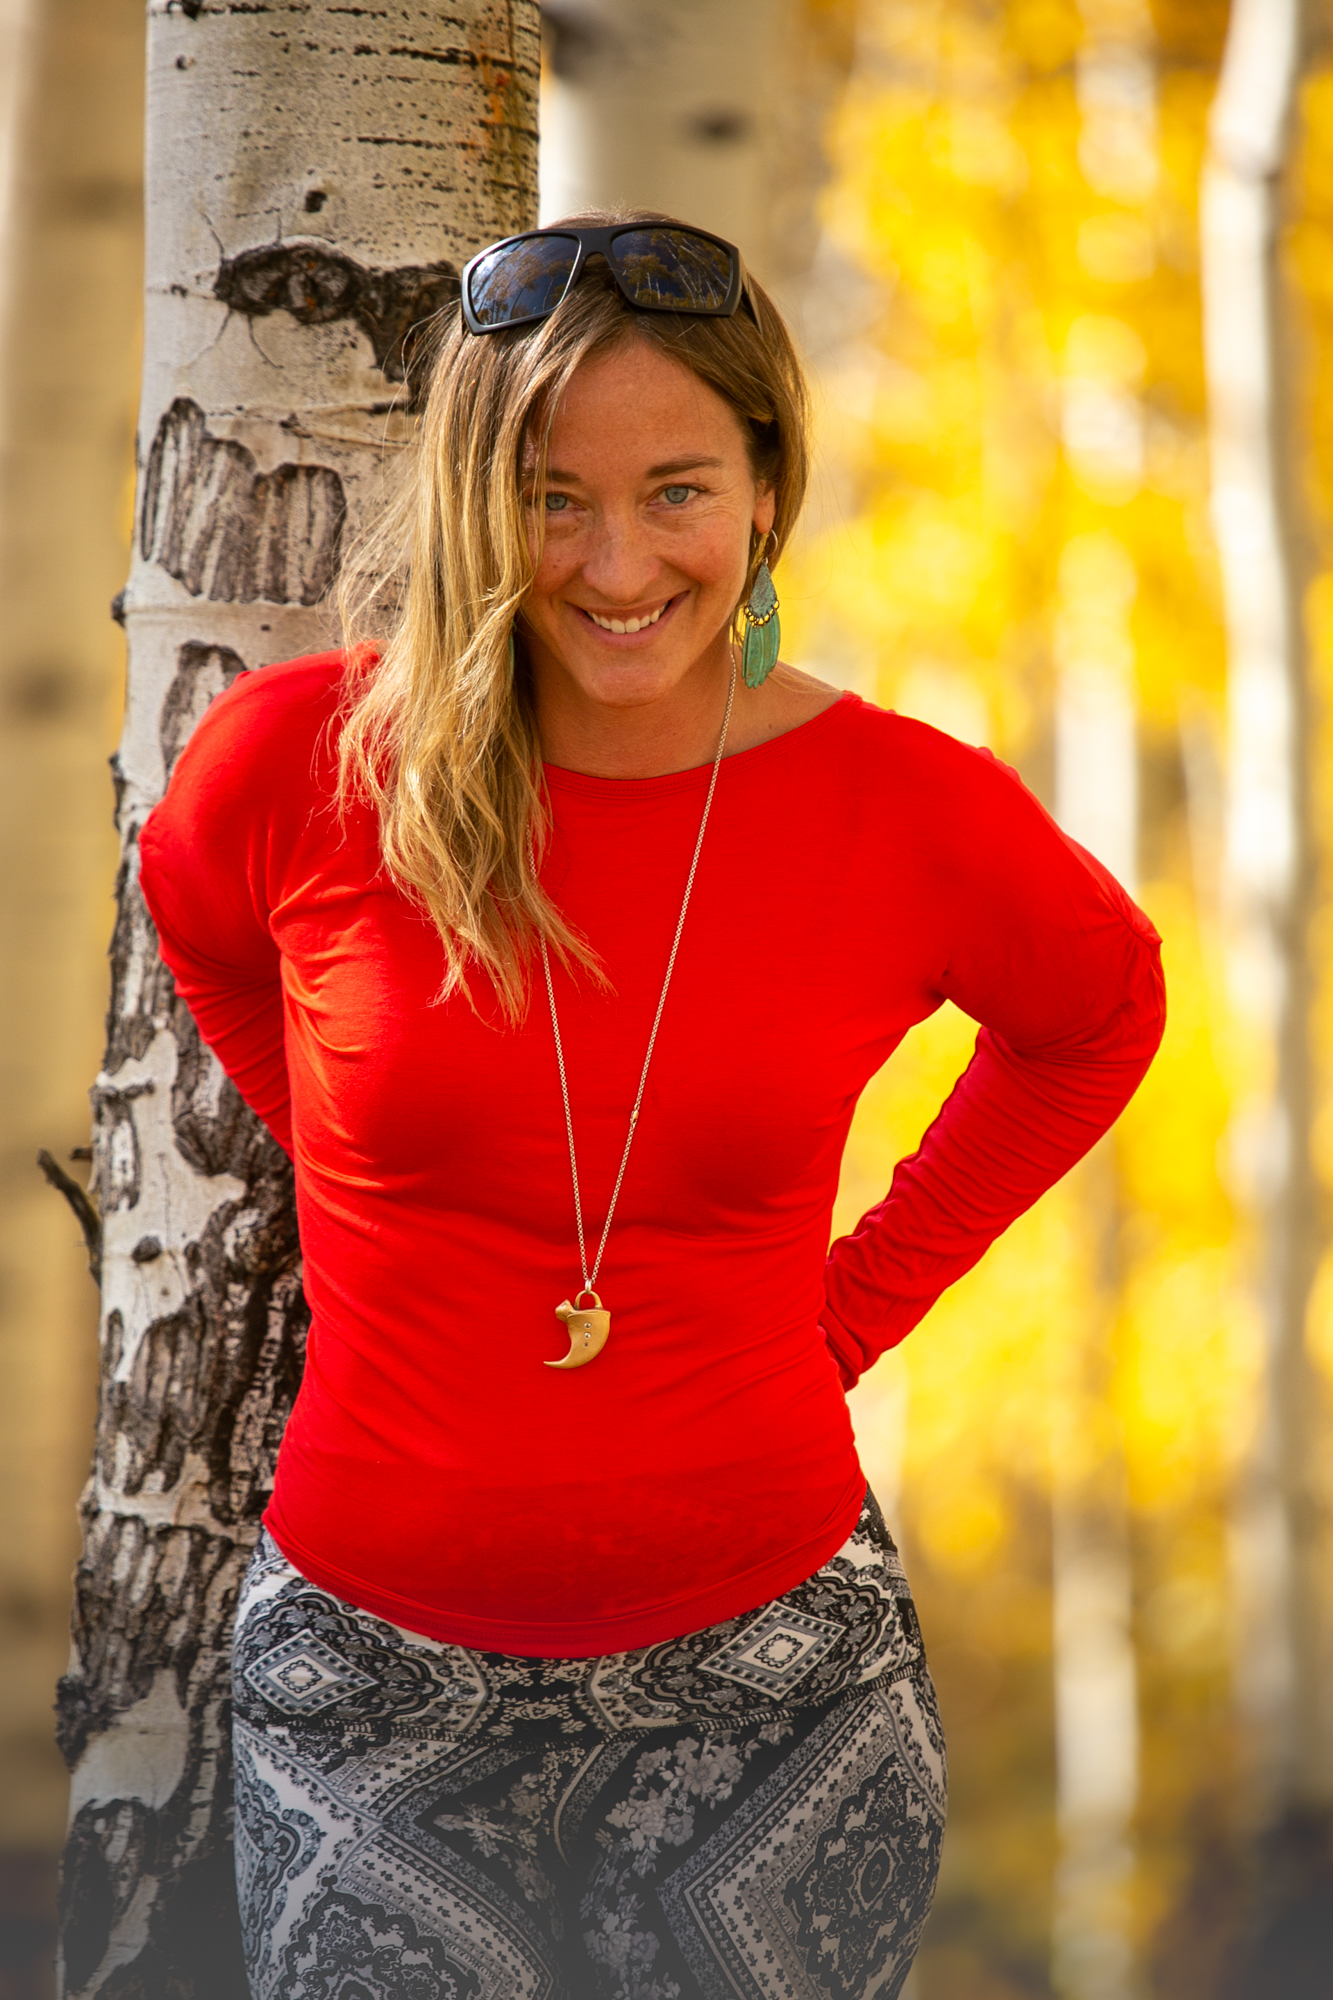 The Starr Top is a new addition to the Autumn Teneyl line and you'll love it's versatility!  It can be worn with the v-neck in the front or back depending on your mood and we've added thumb holes in the sleeves for either fun or function - You decide! Made from recycled birch wood modal for supreme comfort and fit, this flattering top is a must have in any collection.